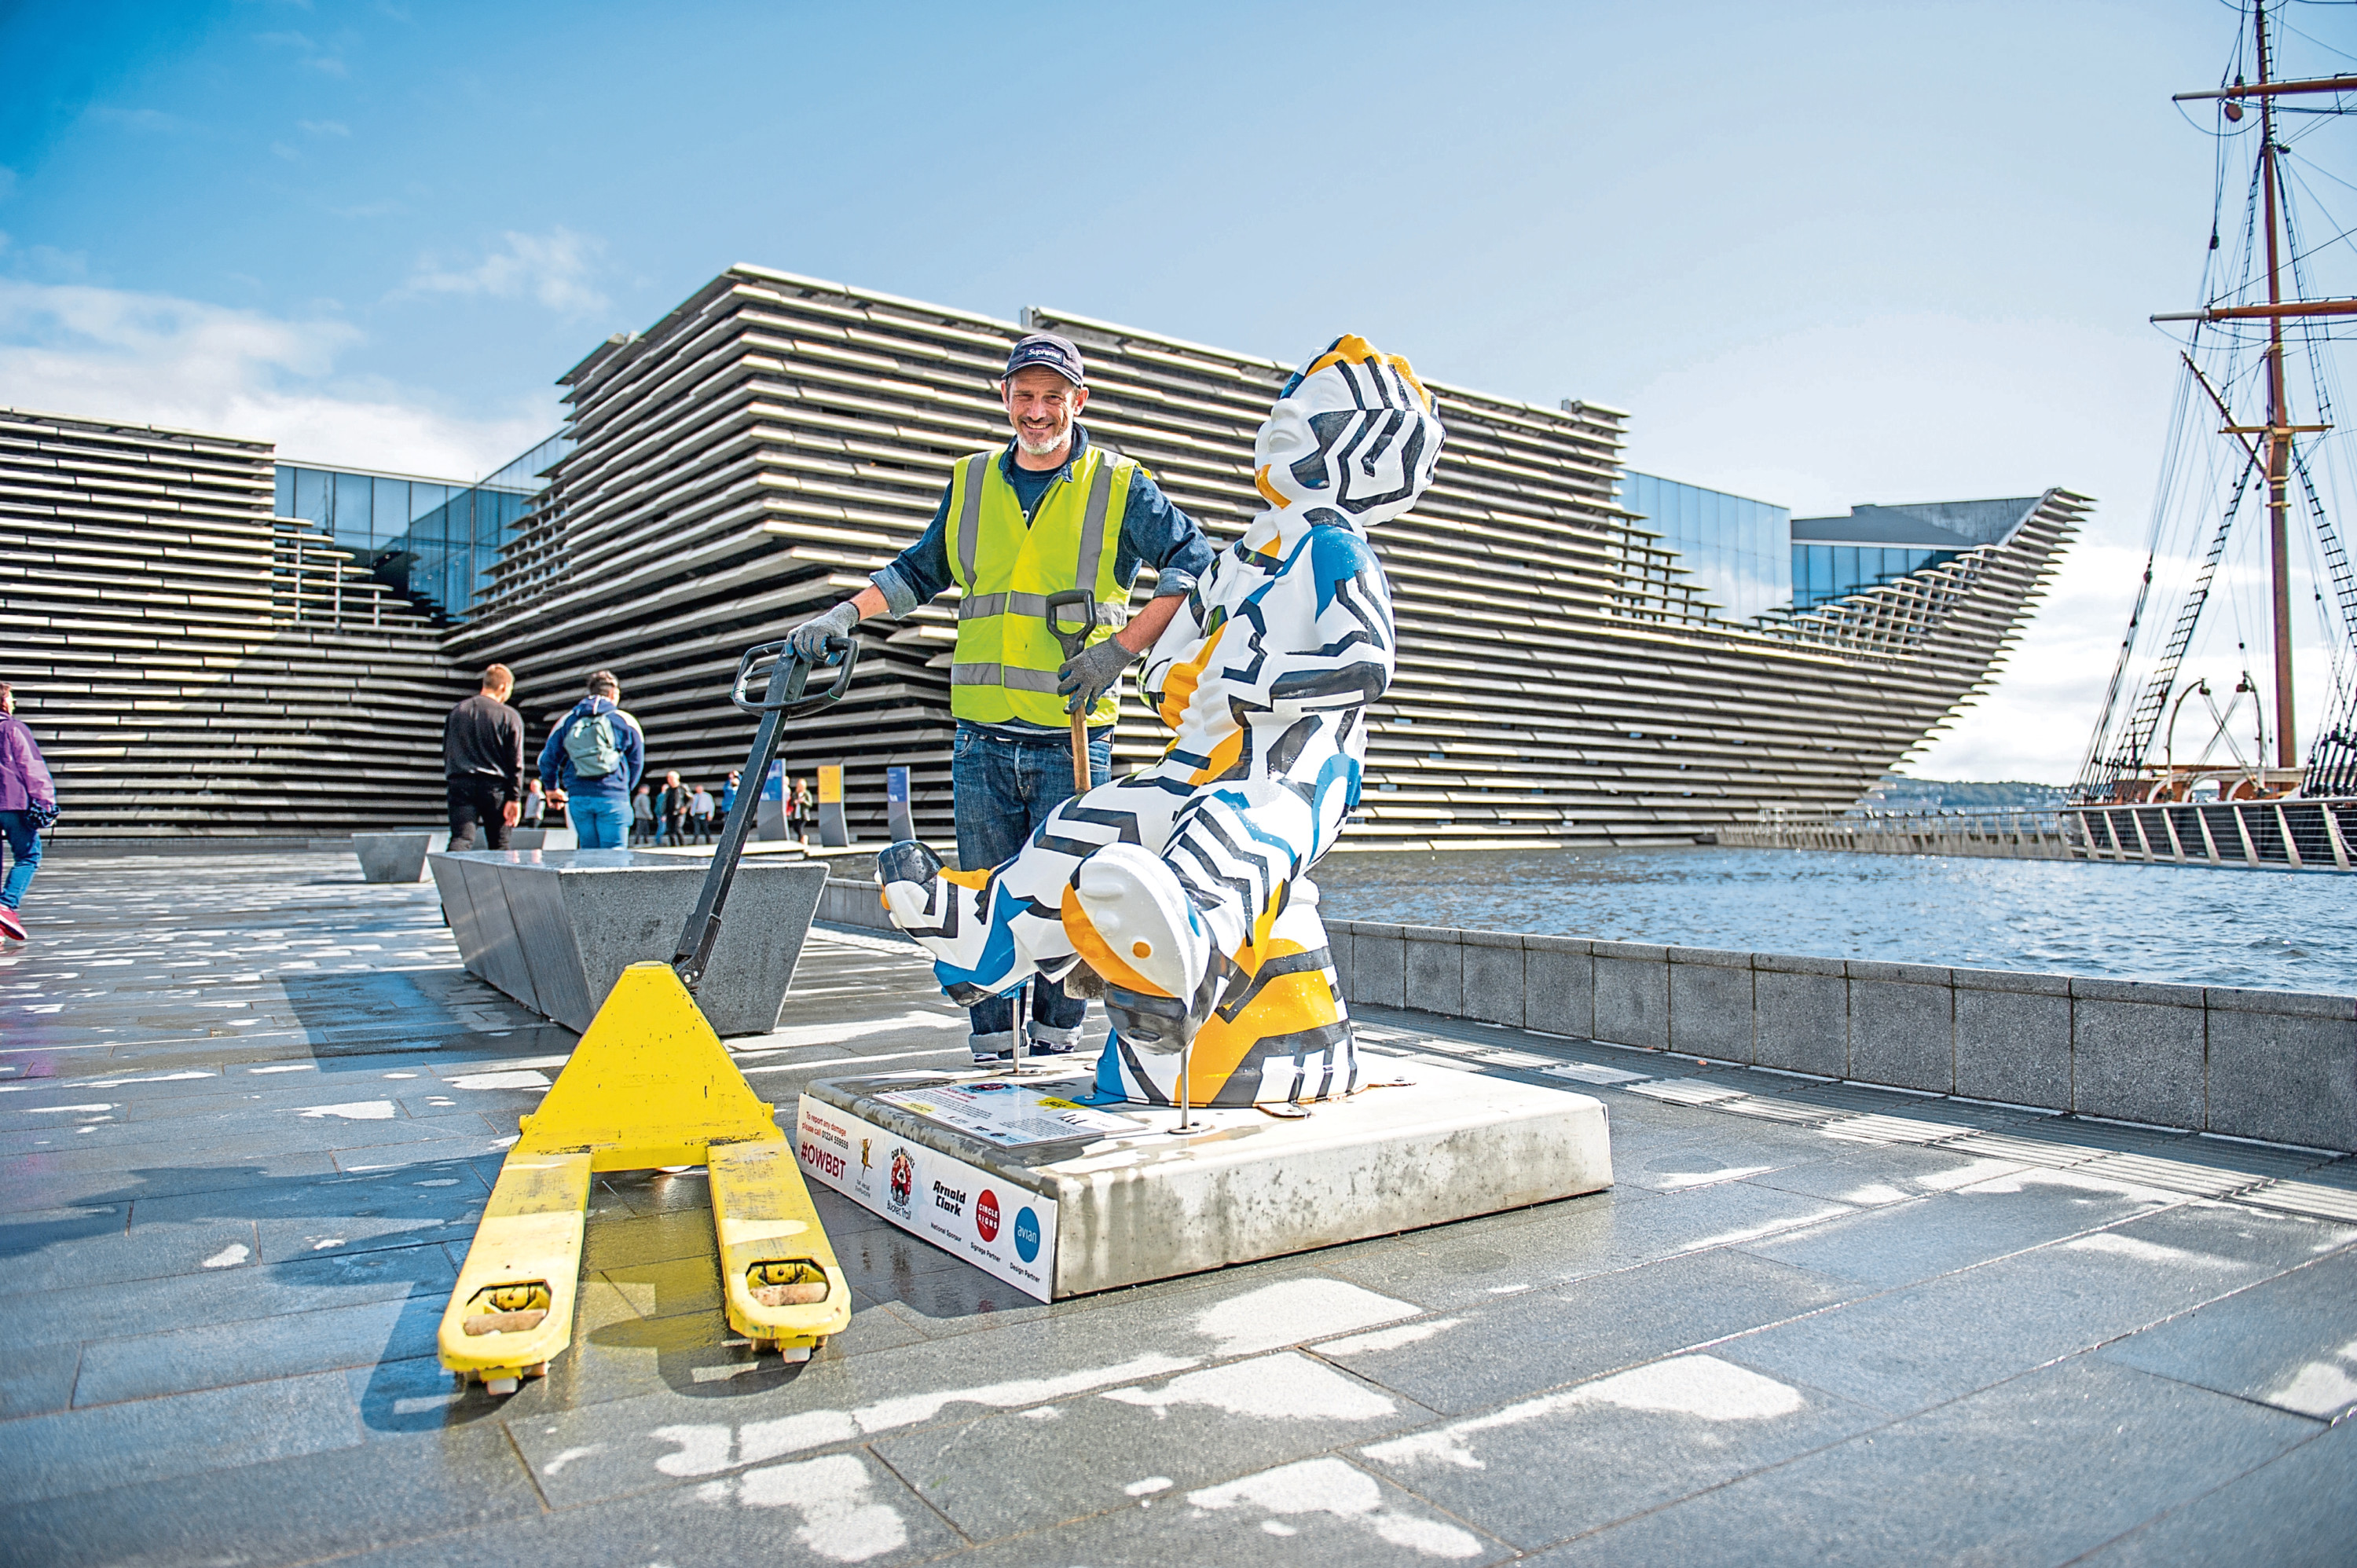 The Oor Wullie uplift from Dundee.